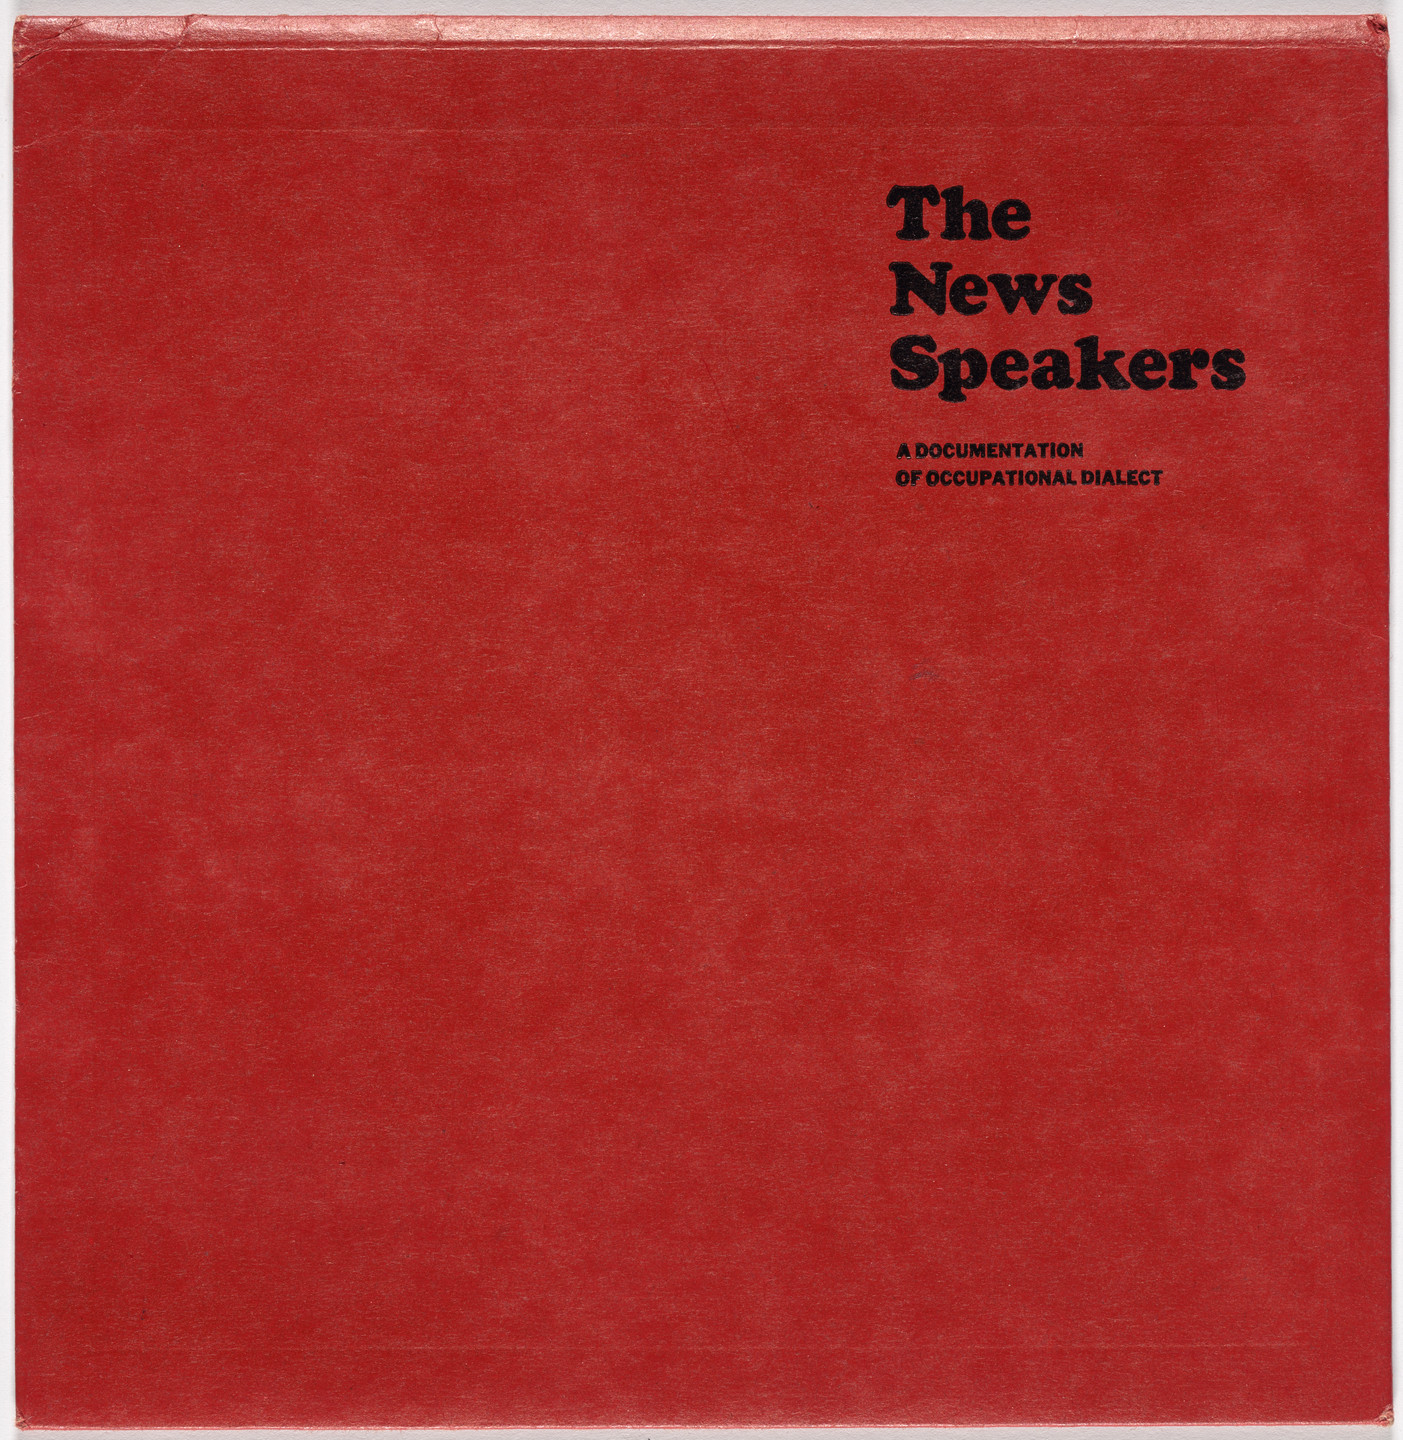 Various Artists. The News Speakers, A Documentation of Occupational Dialect. 1990